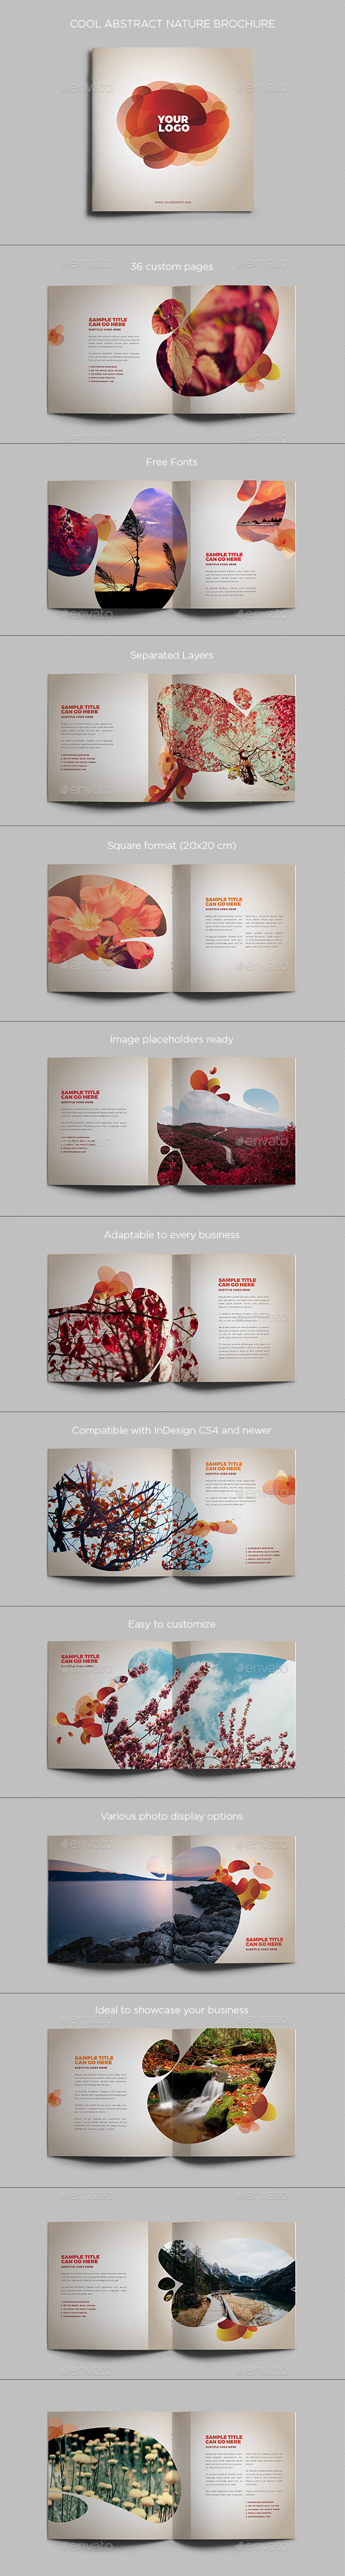 Cool Abstract Nature Brochure - Brochures Print Templates